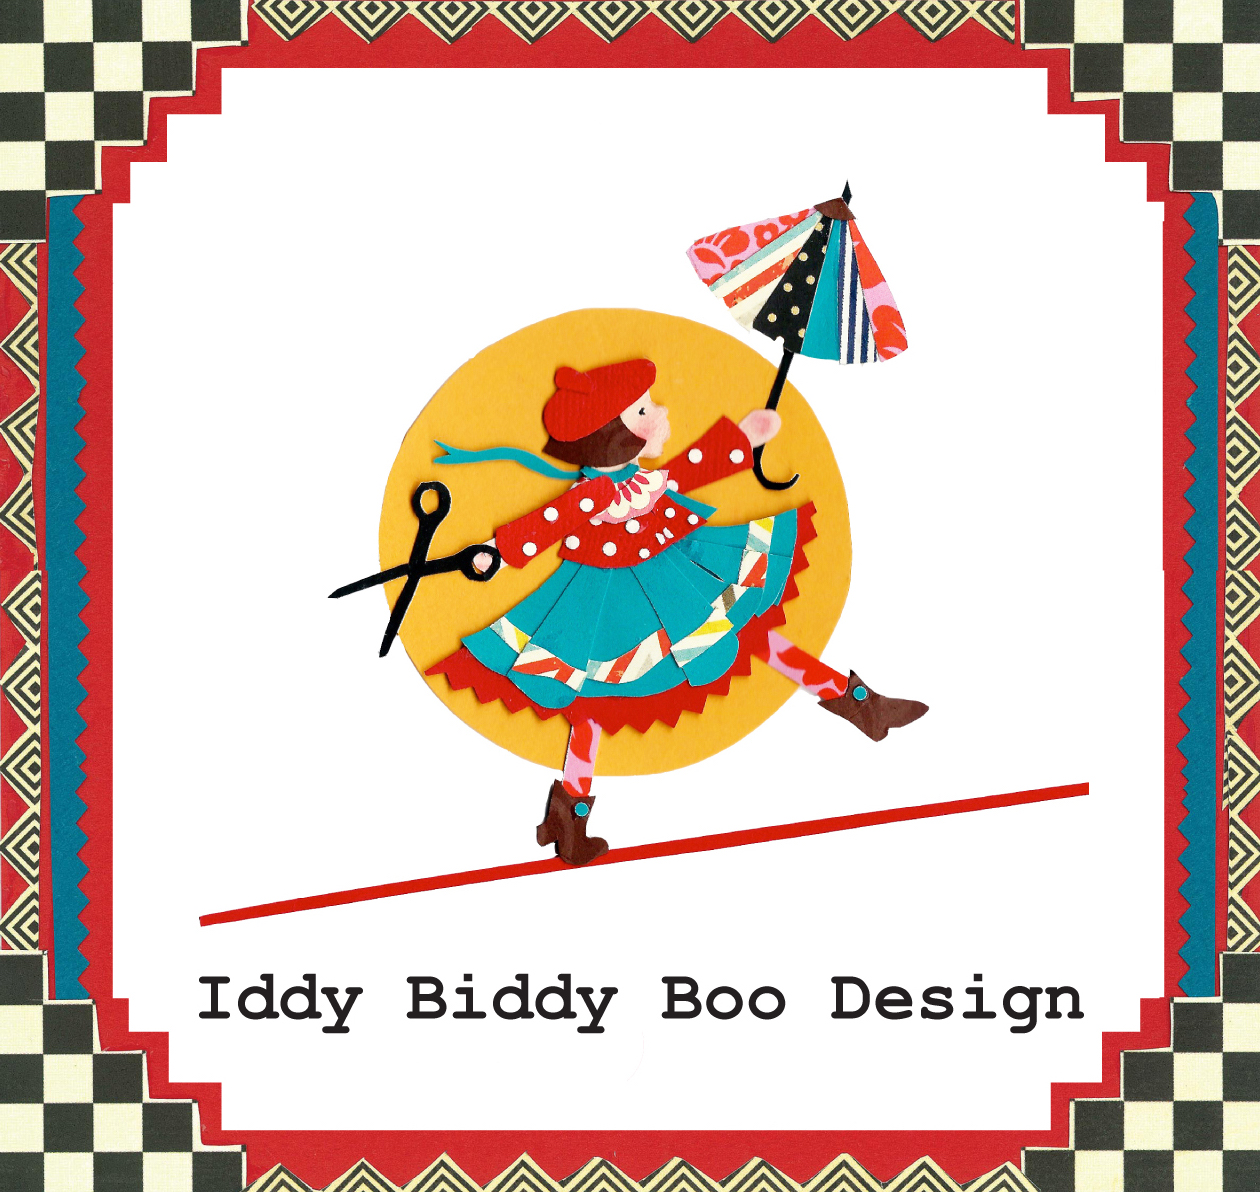 Iddy Biddy Boo Design